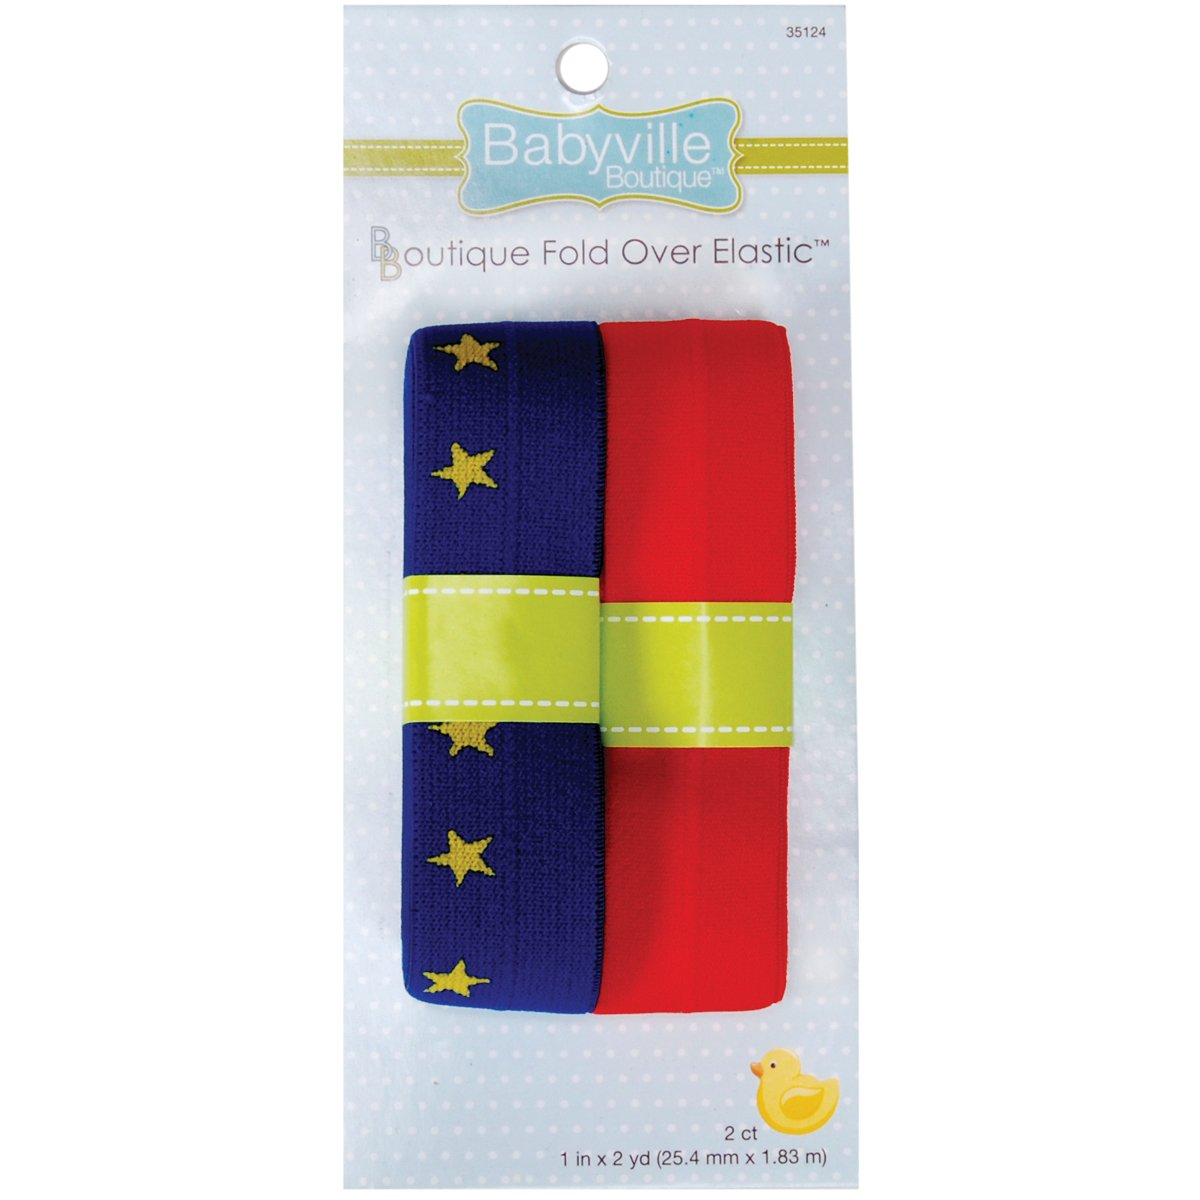 Dritz Babyville Boutique Fold Over Elastic, Stars and Solid Red 35124